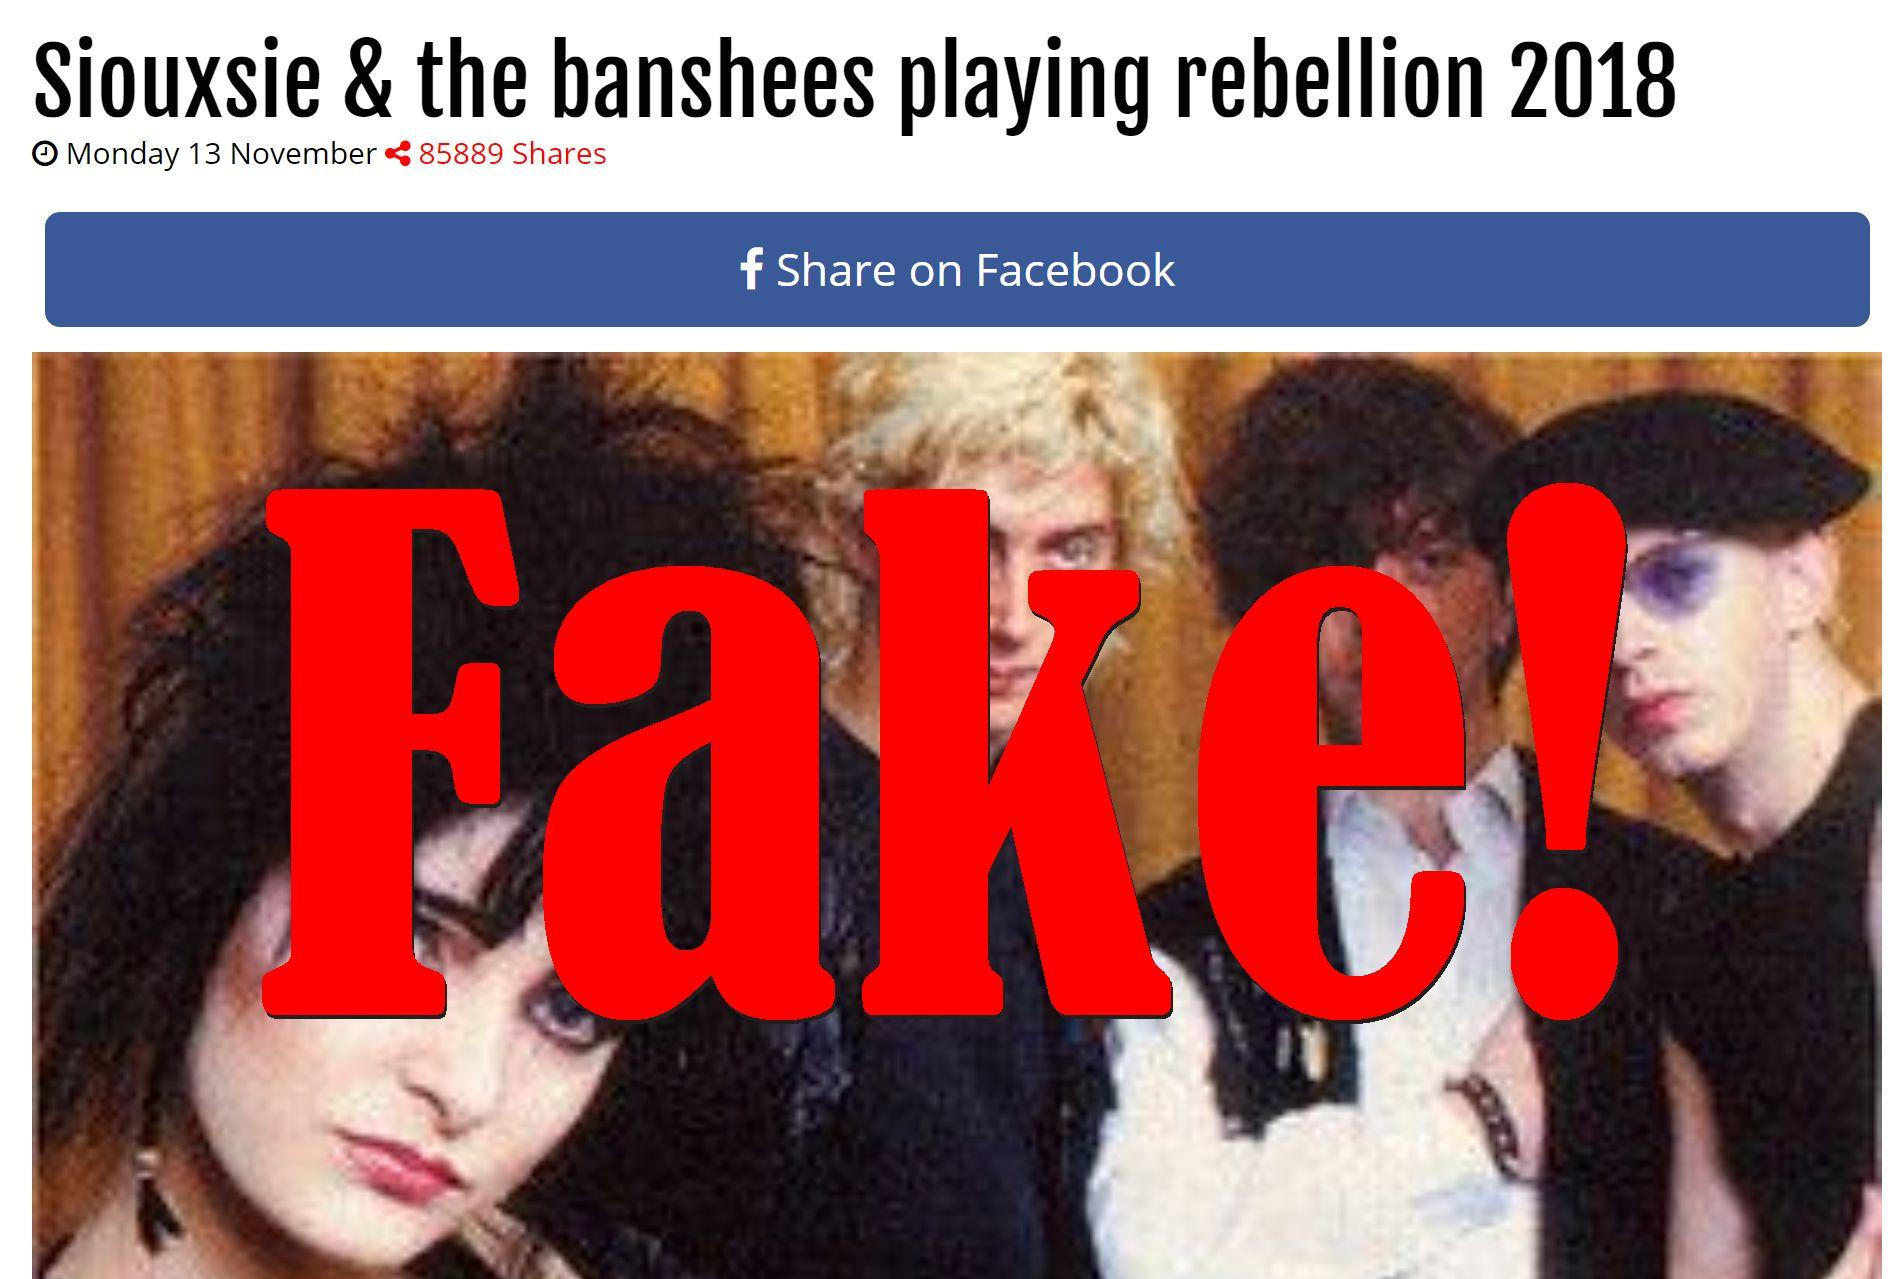 Fake News: Siouxsie & The Banshees NOT Playing Rebellion 2018